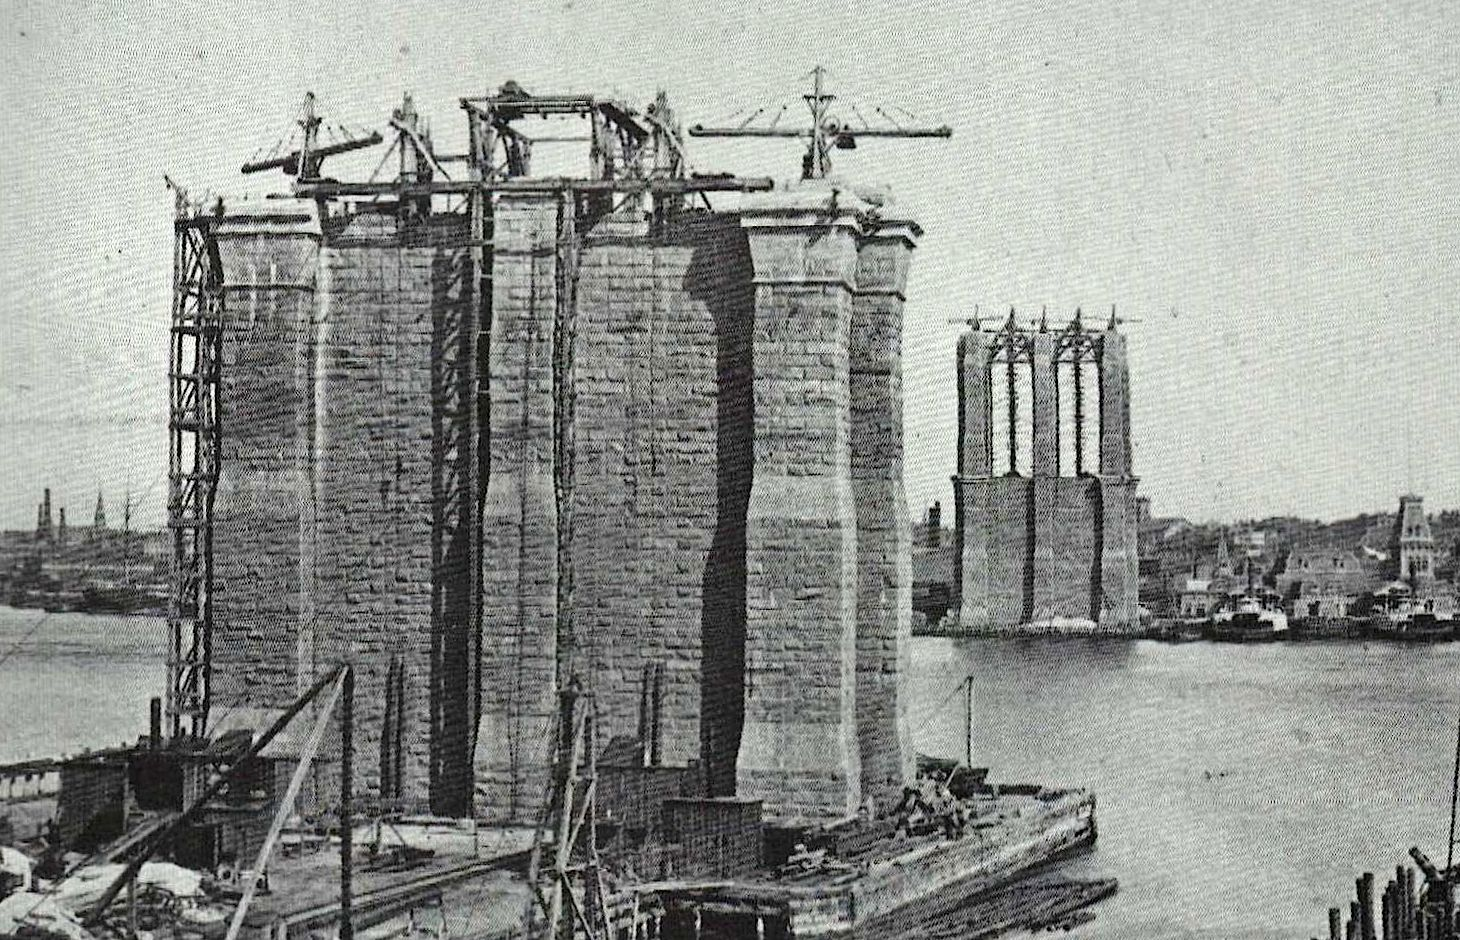 caissons were massive wooden boxes 3 000 tons each for. Black Bedroom Furniture Sets. Home Design Ideas